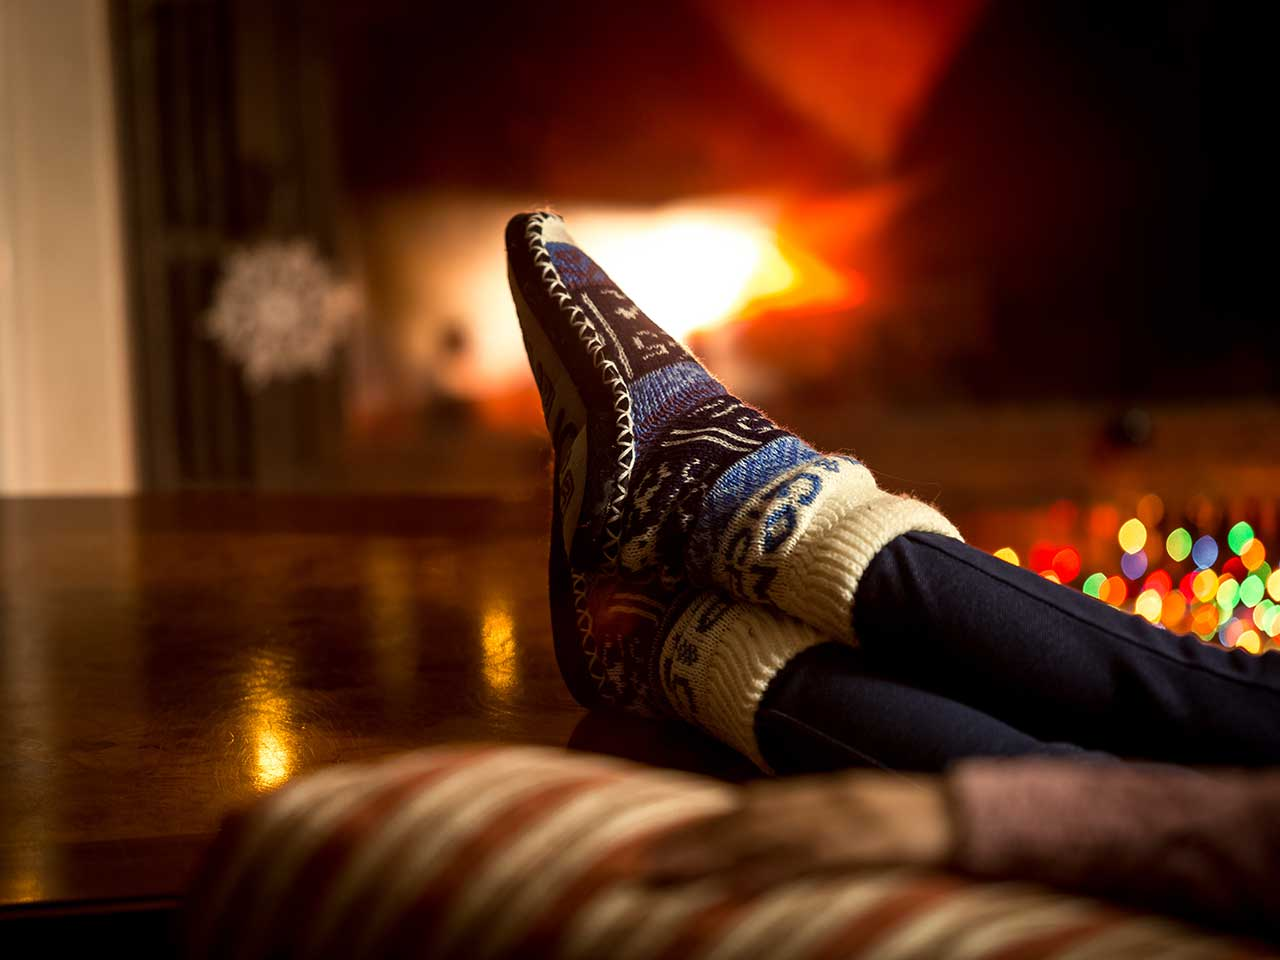 Slippered feet in front of warm fire at Christmas time